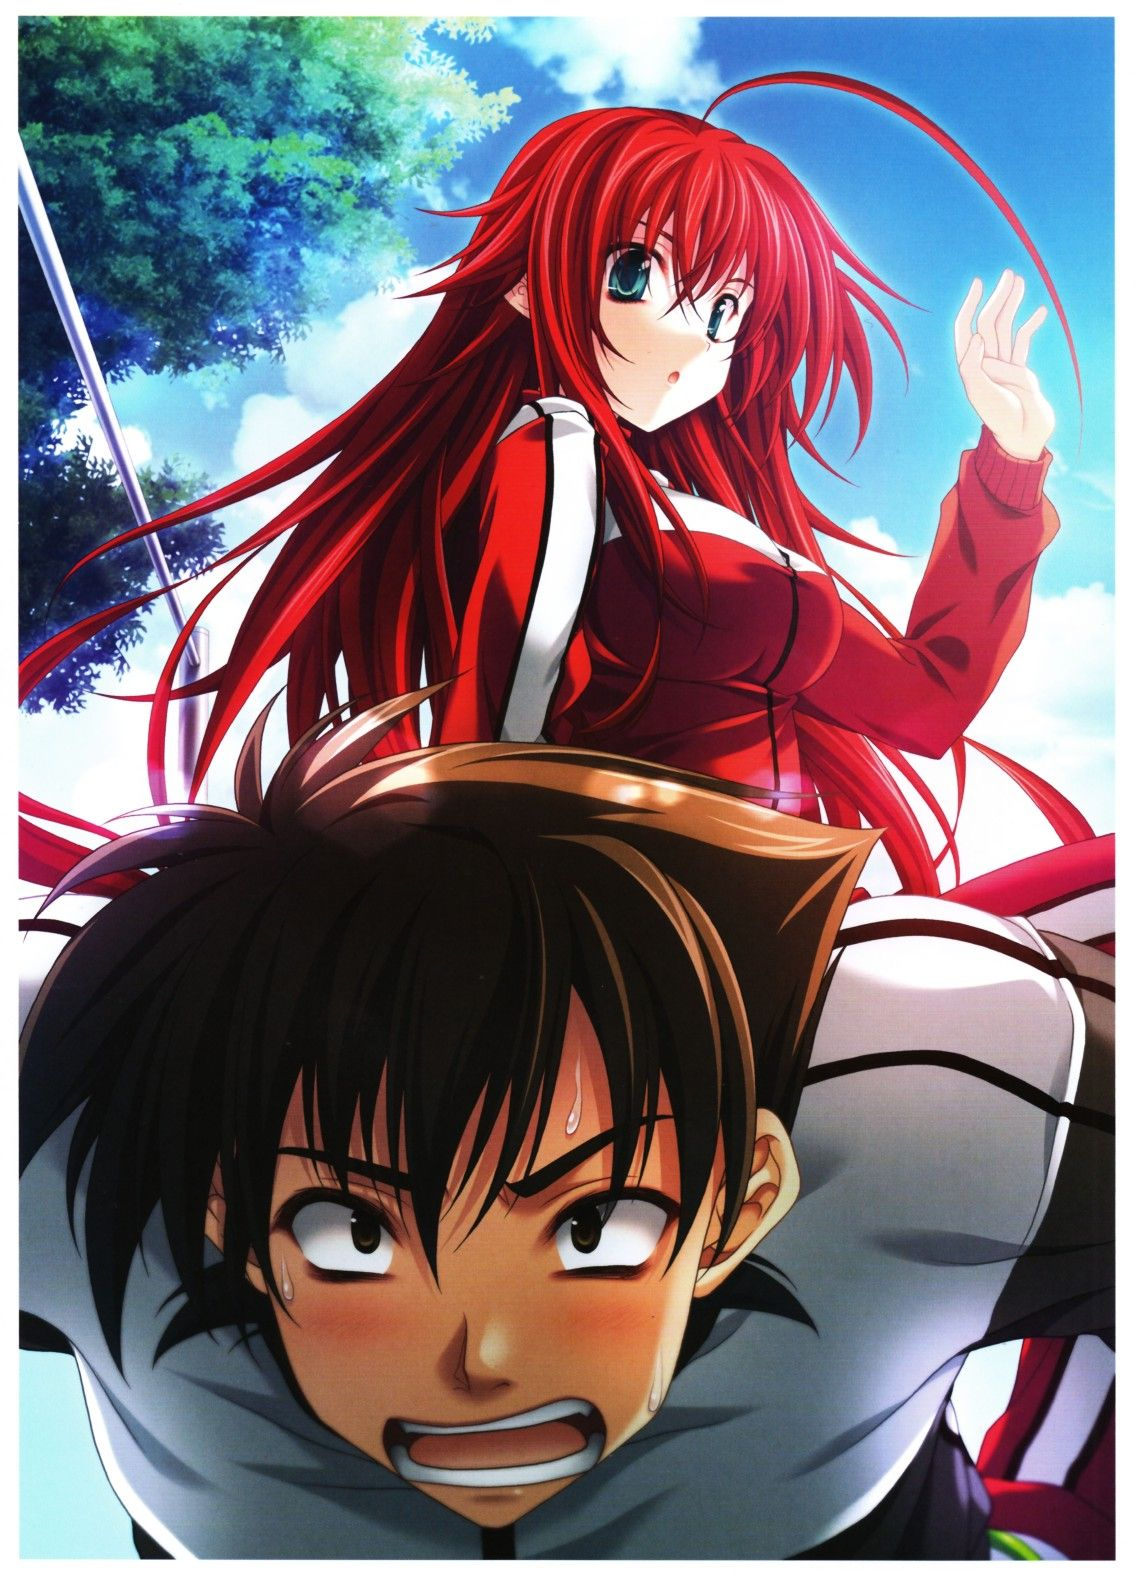 Rias Gremory and Issei High school, Anime, Character drawing